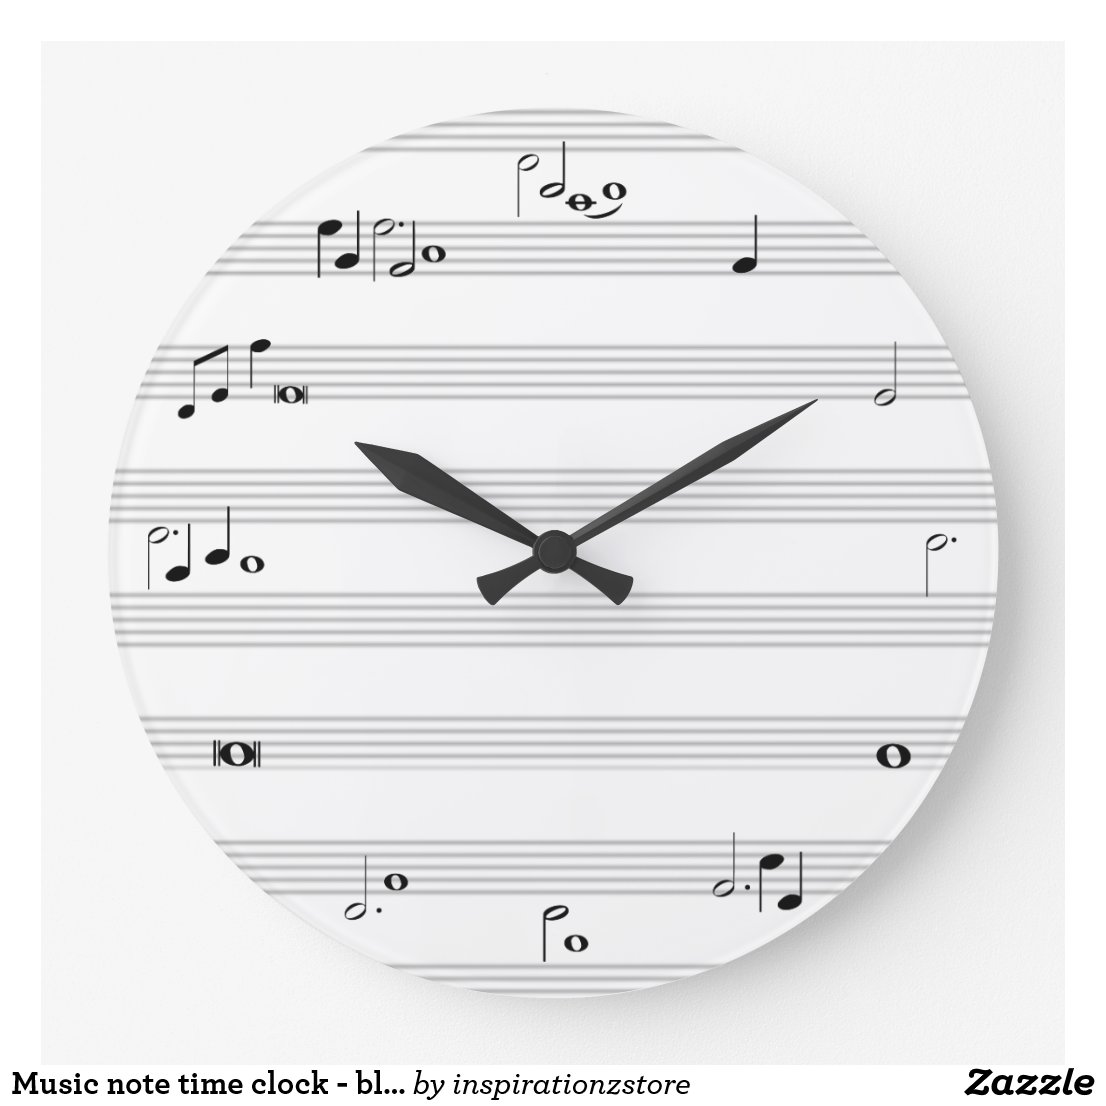 Music note time clock